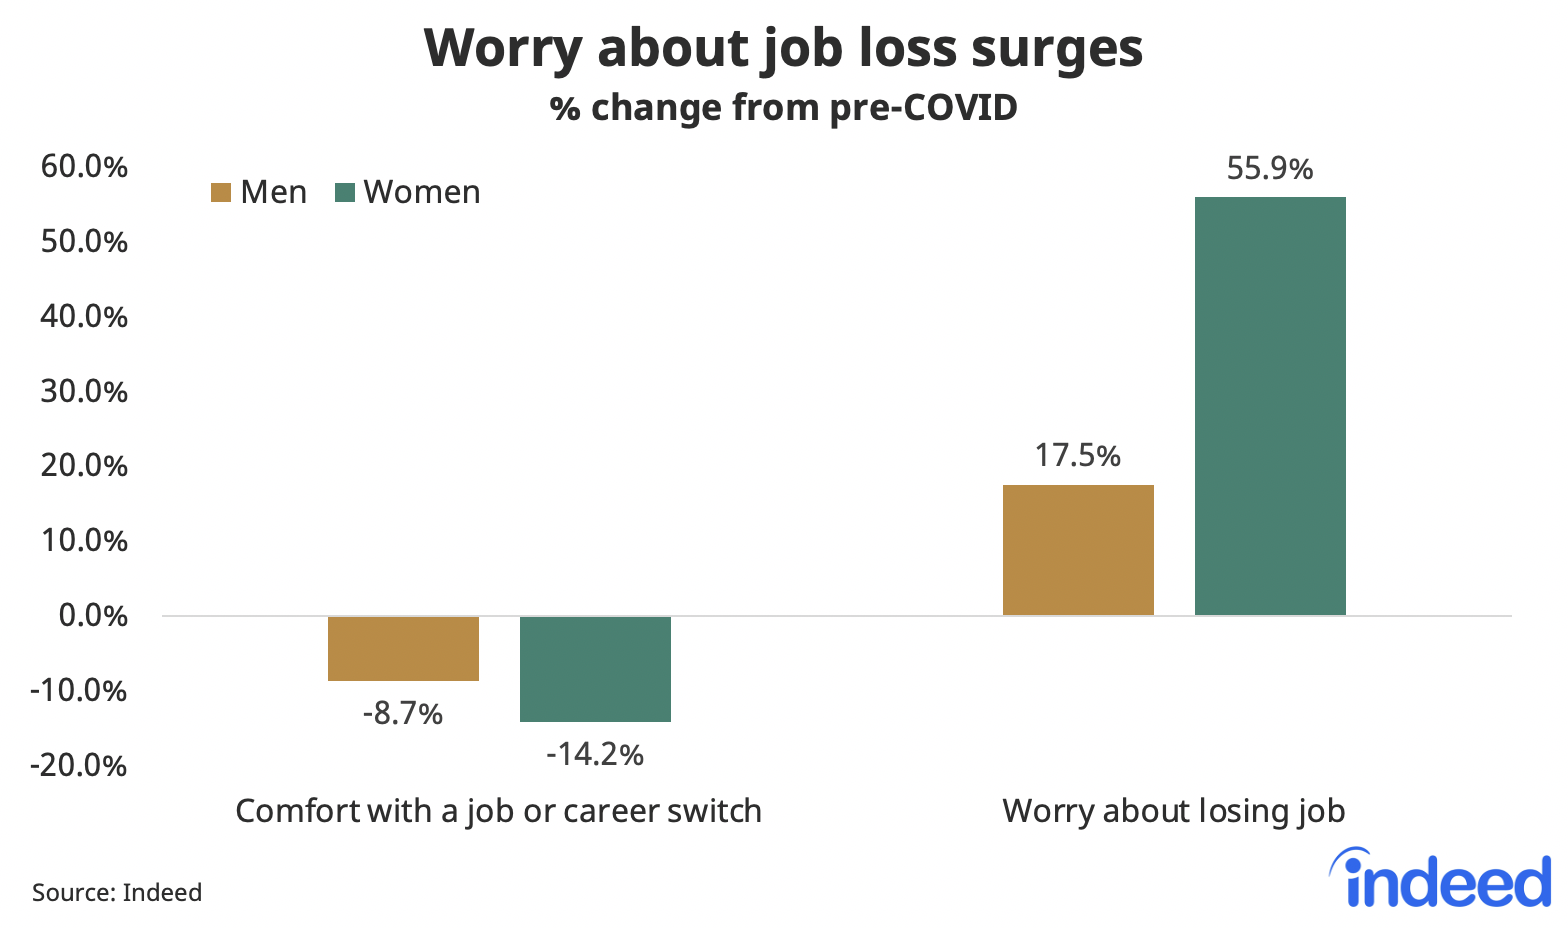 Bar graph showing worry about job loss surges, men and women both surveyed